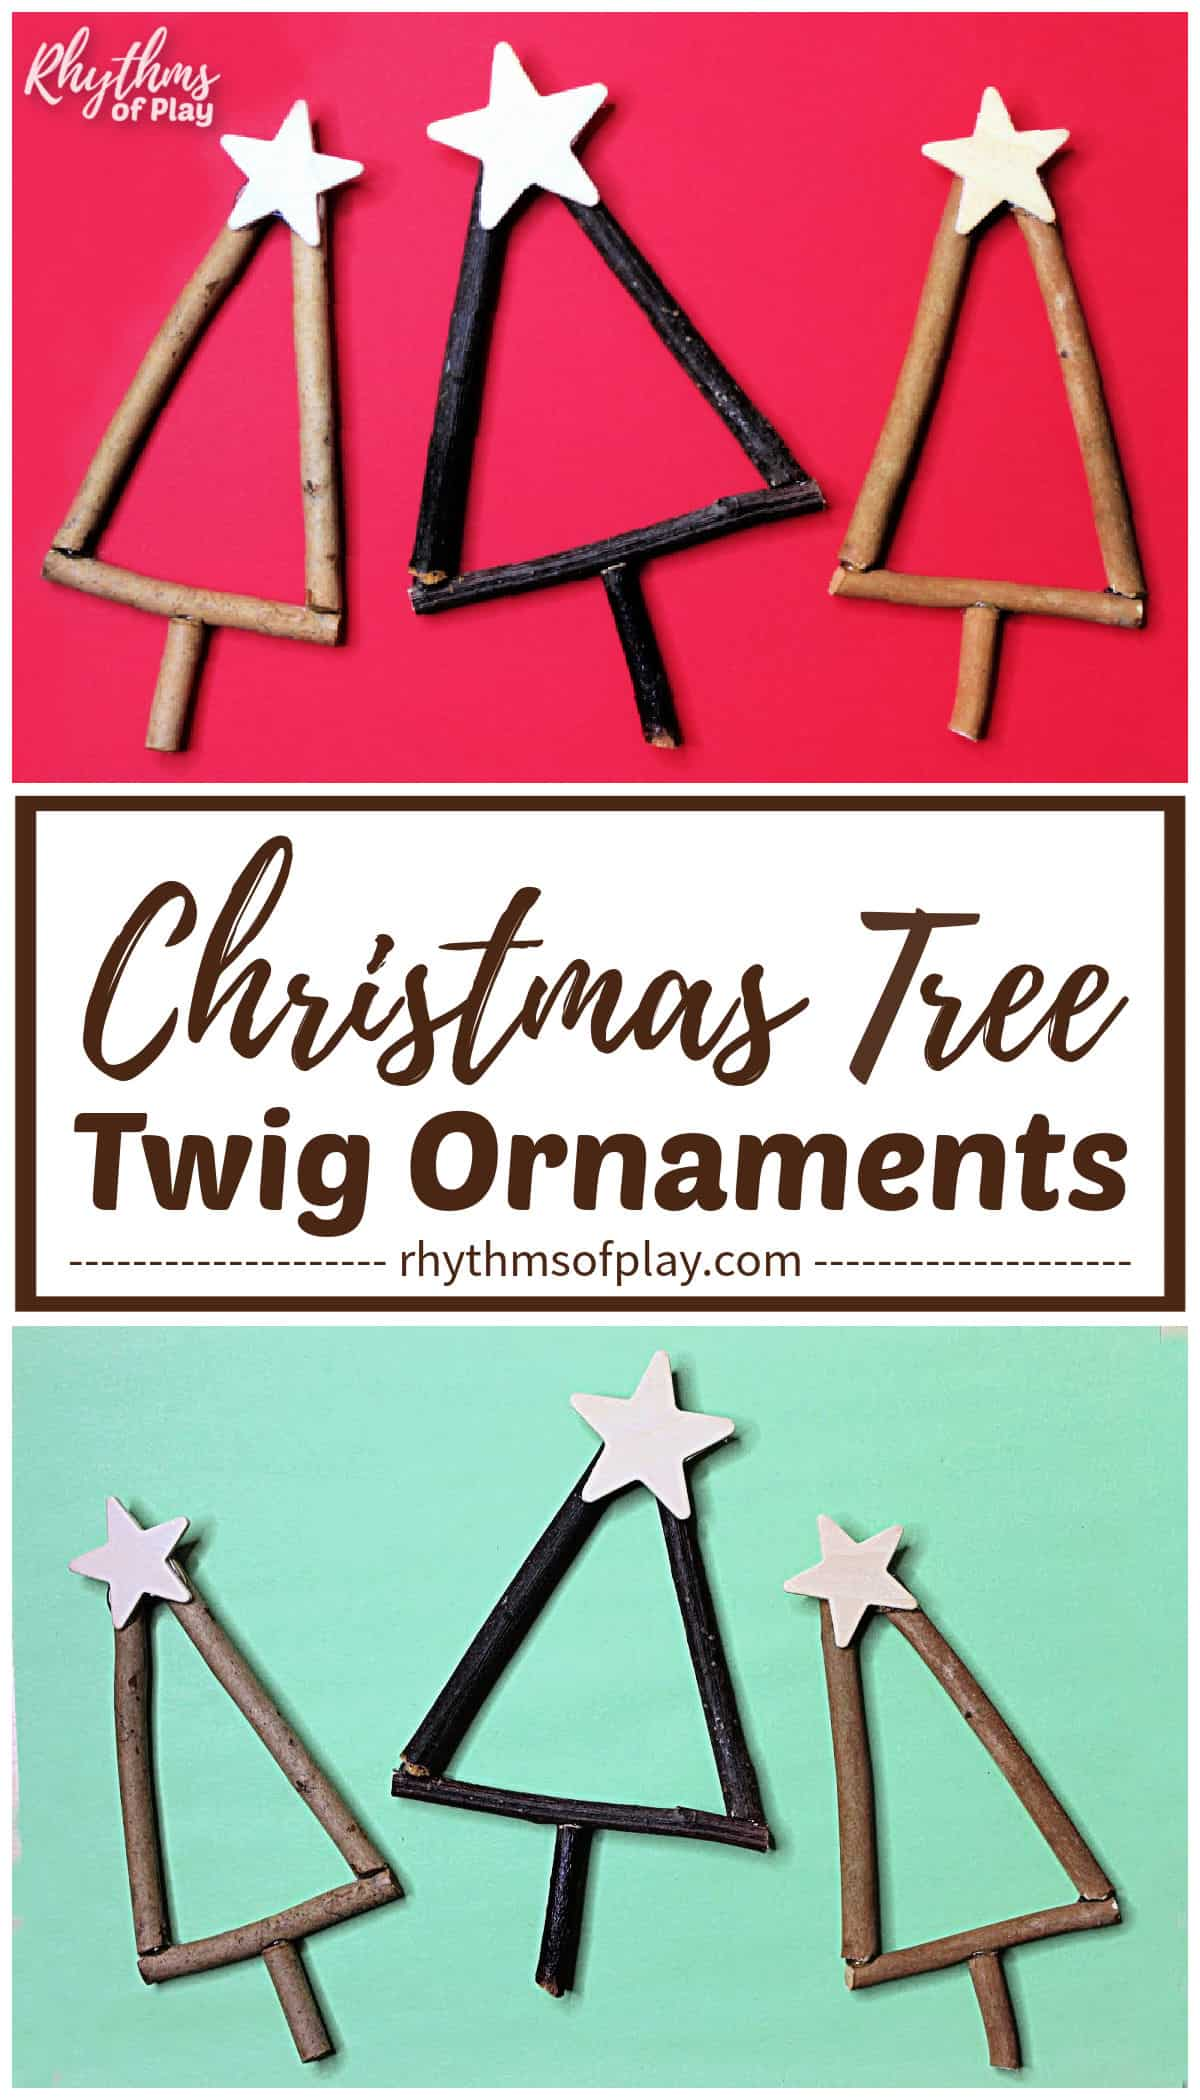 Christmas tree twig ornaments with a wooden star on top